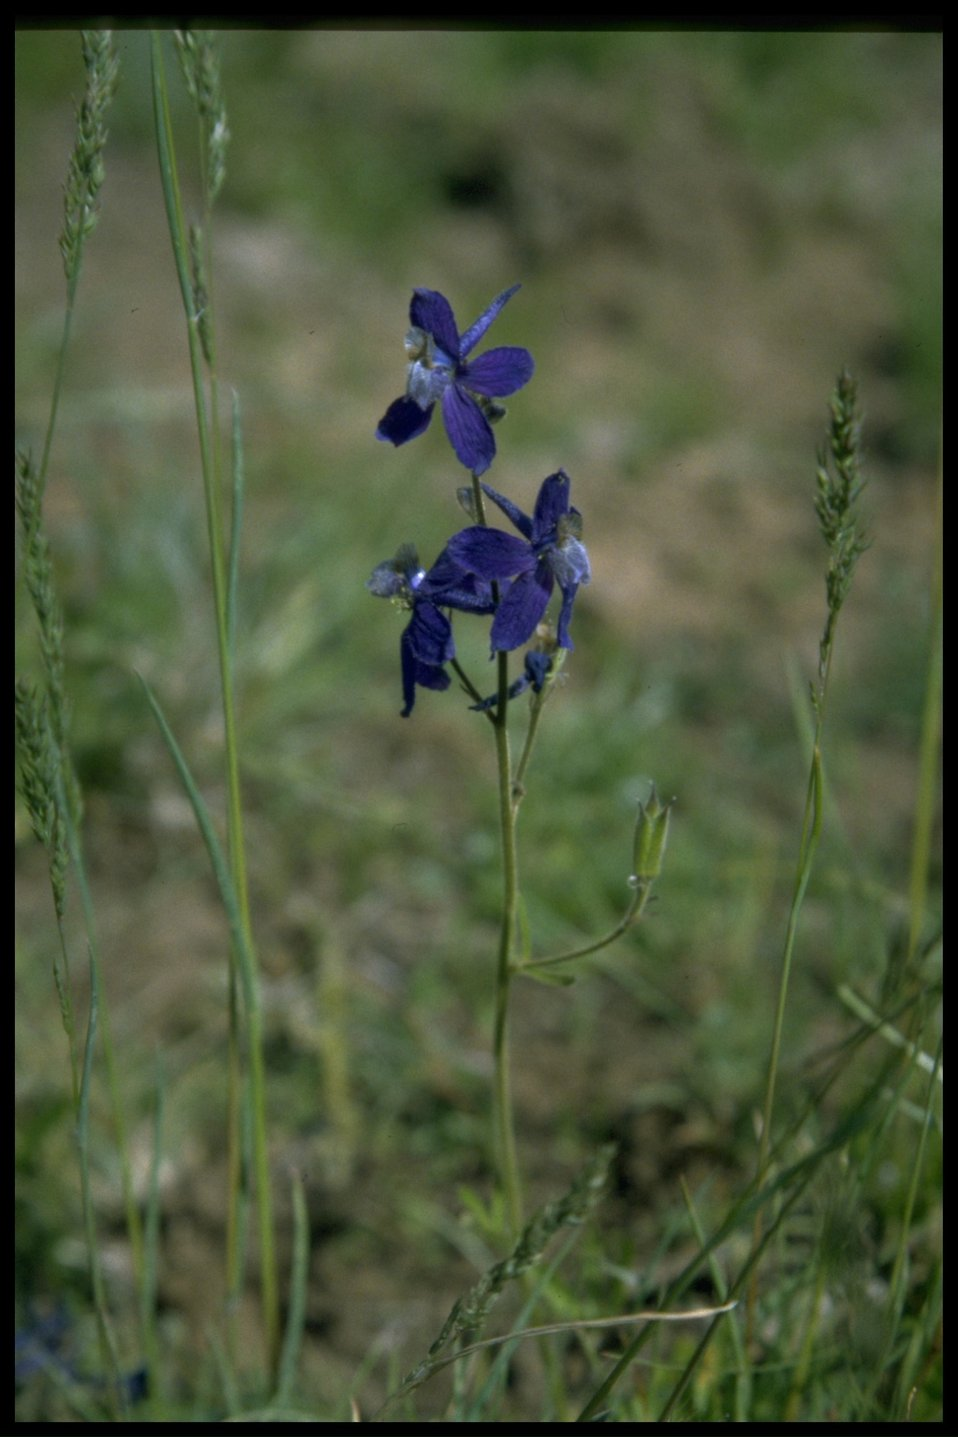 Medium shot of Larkspur wildflower.